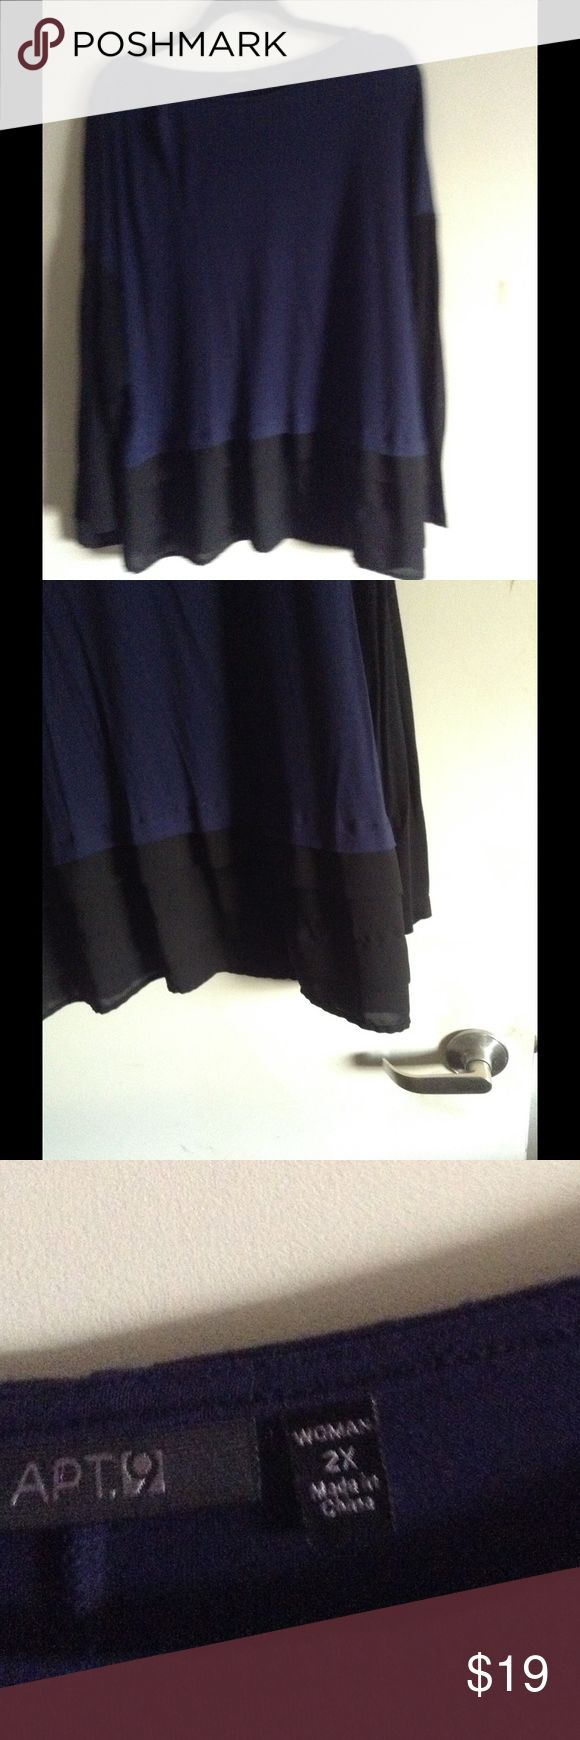 Navy & Black Beauty This top is really beautiful with navy polyester spandex material gives it a nice drape with black layered chiffon on the bottom. Long sleeved, in excellent used condition Apt. 9 Tops